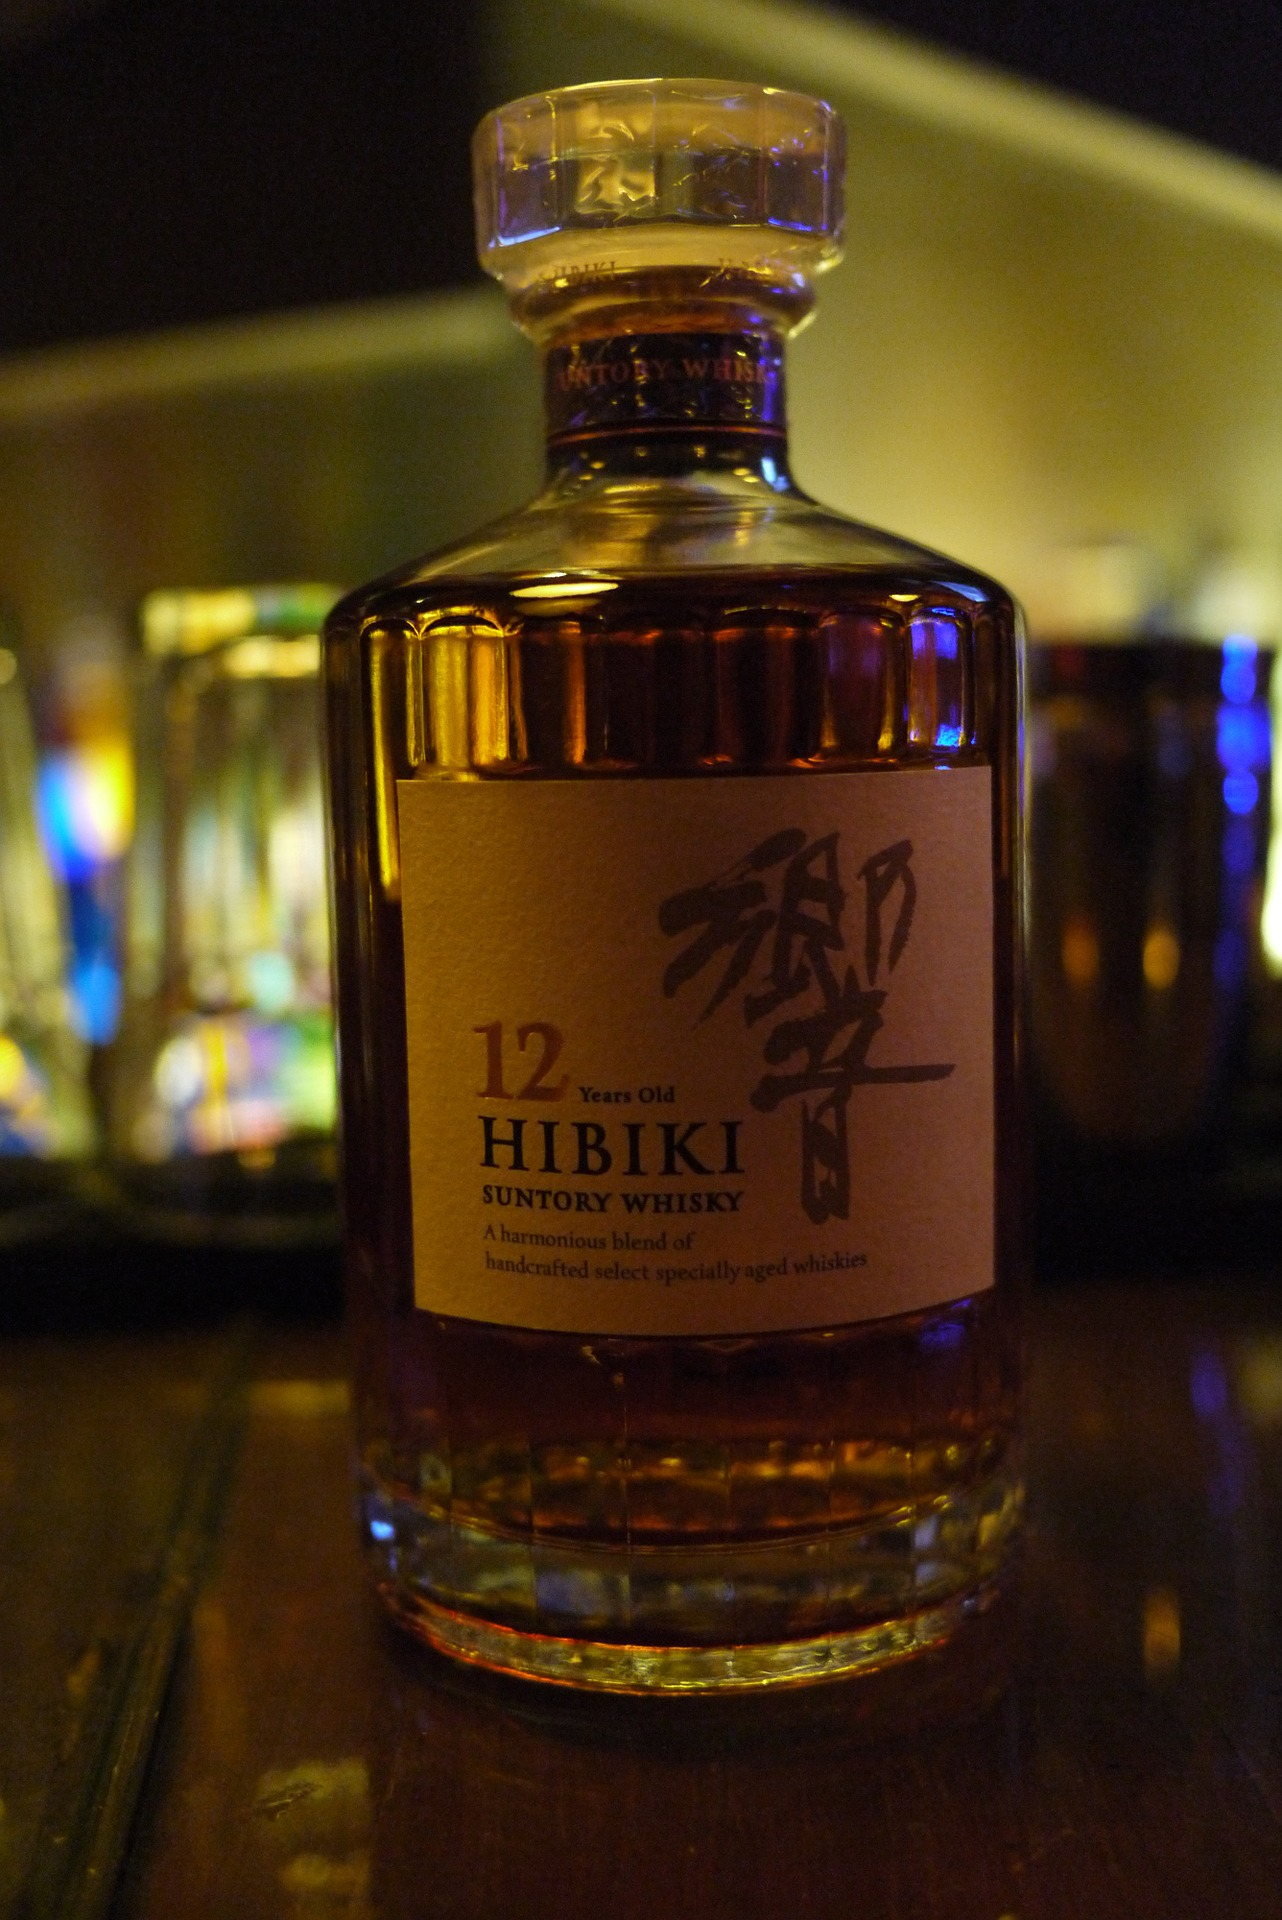 japanese whiskey was awarded 'best whiskey in the world' in the 2015 world whiskey bible...